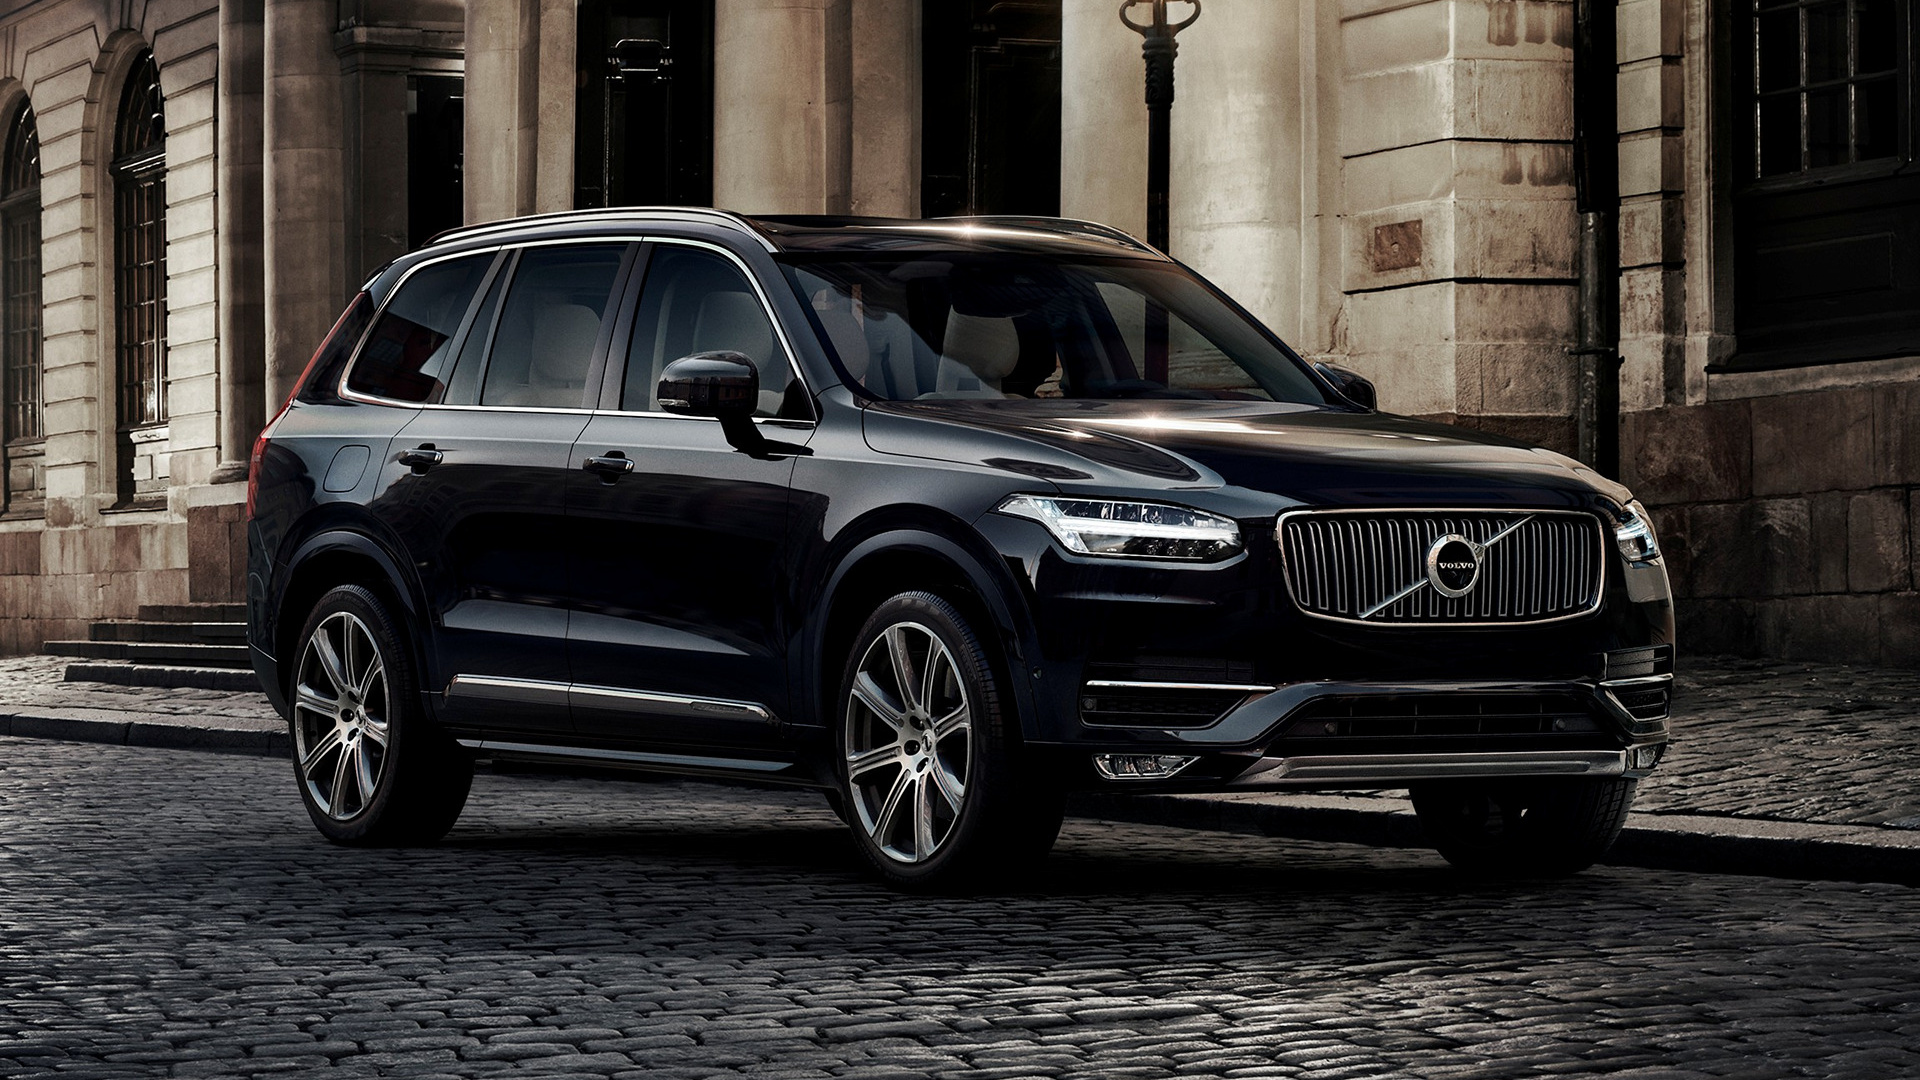 Volvo Xc90 Inscription First Edition 2015 Wallpapers And